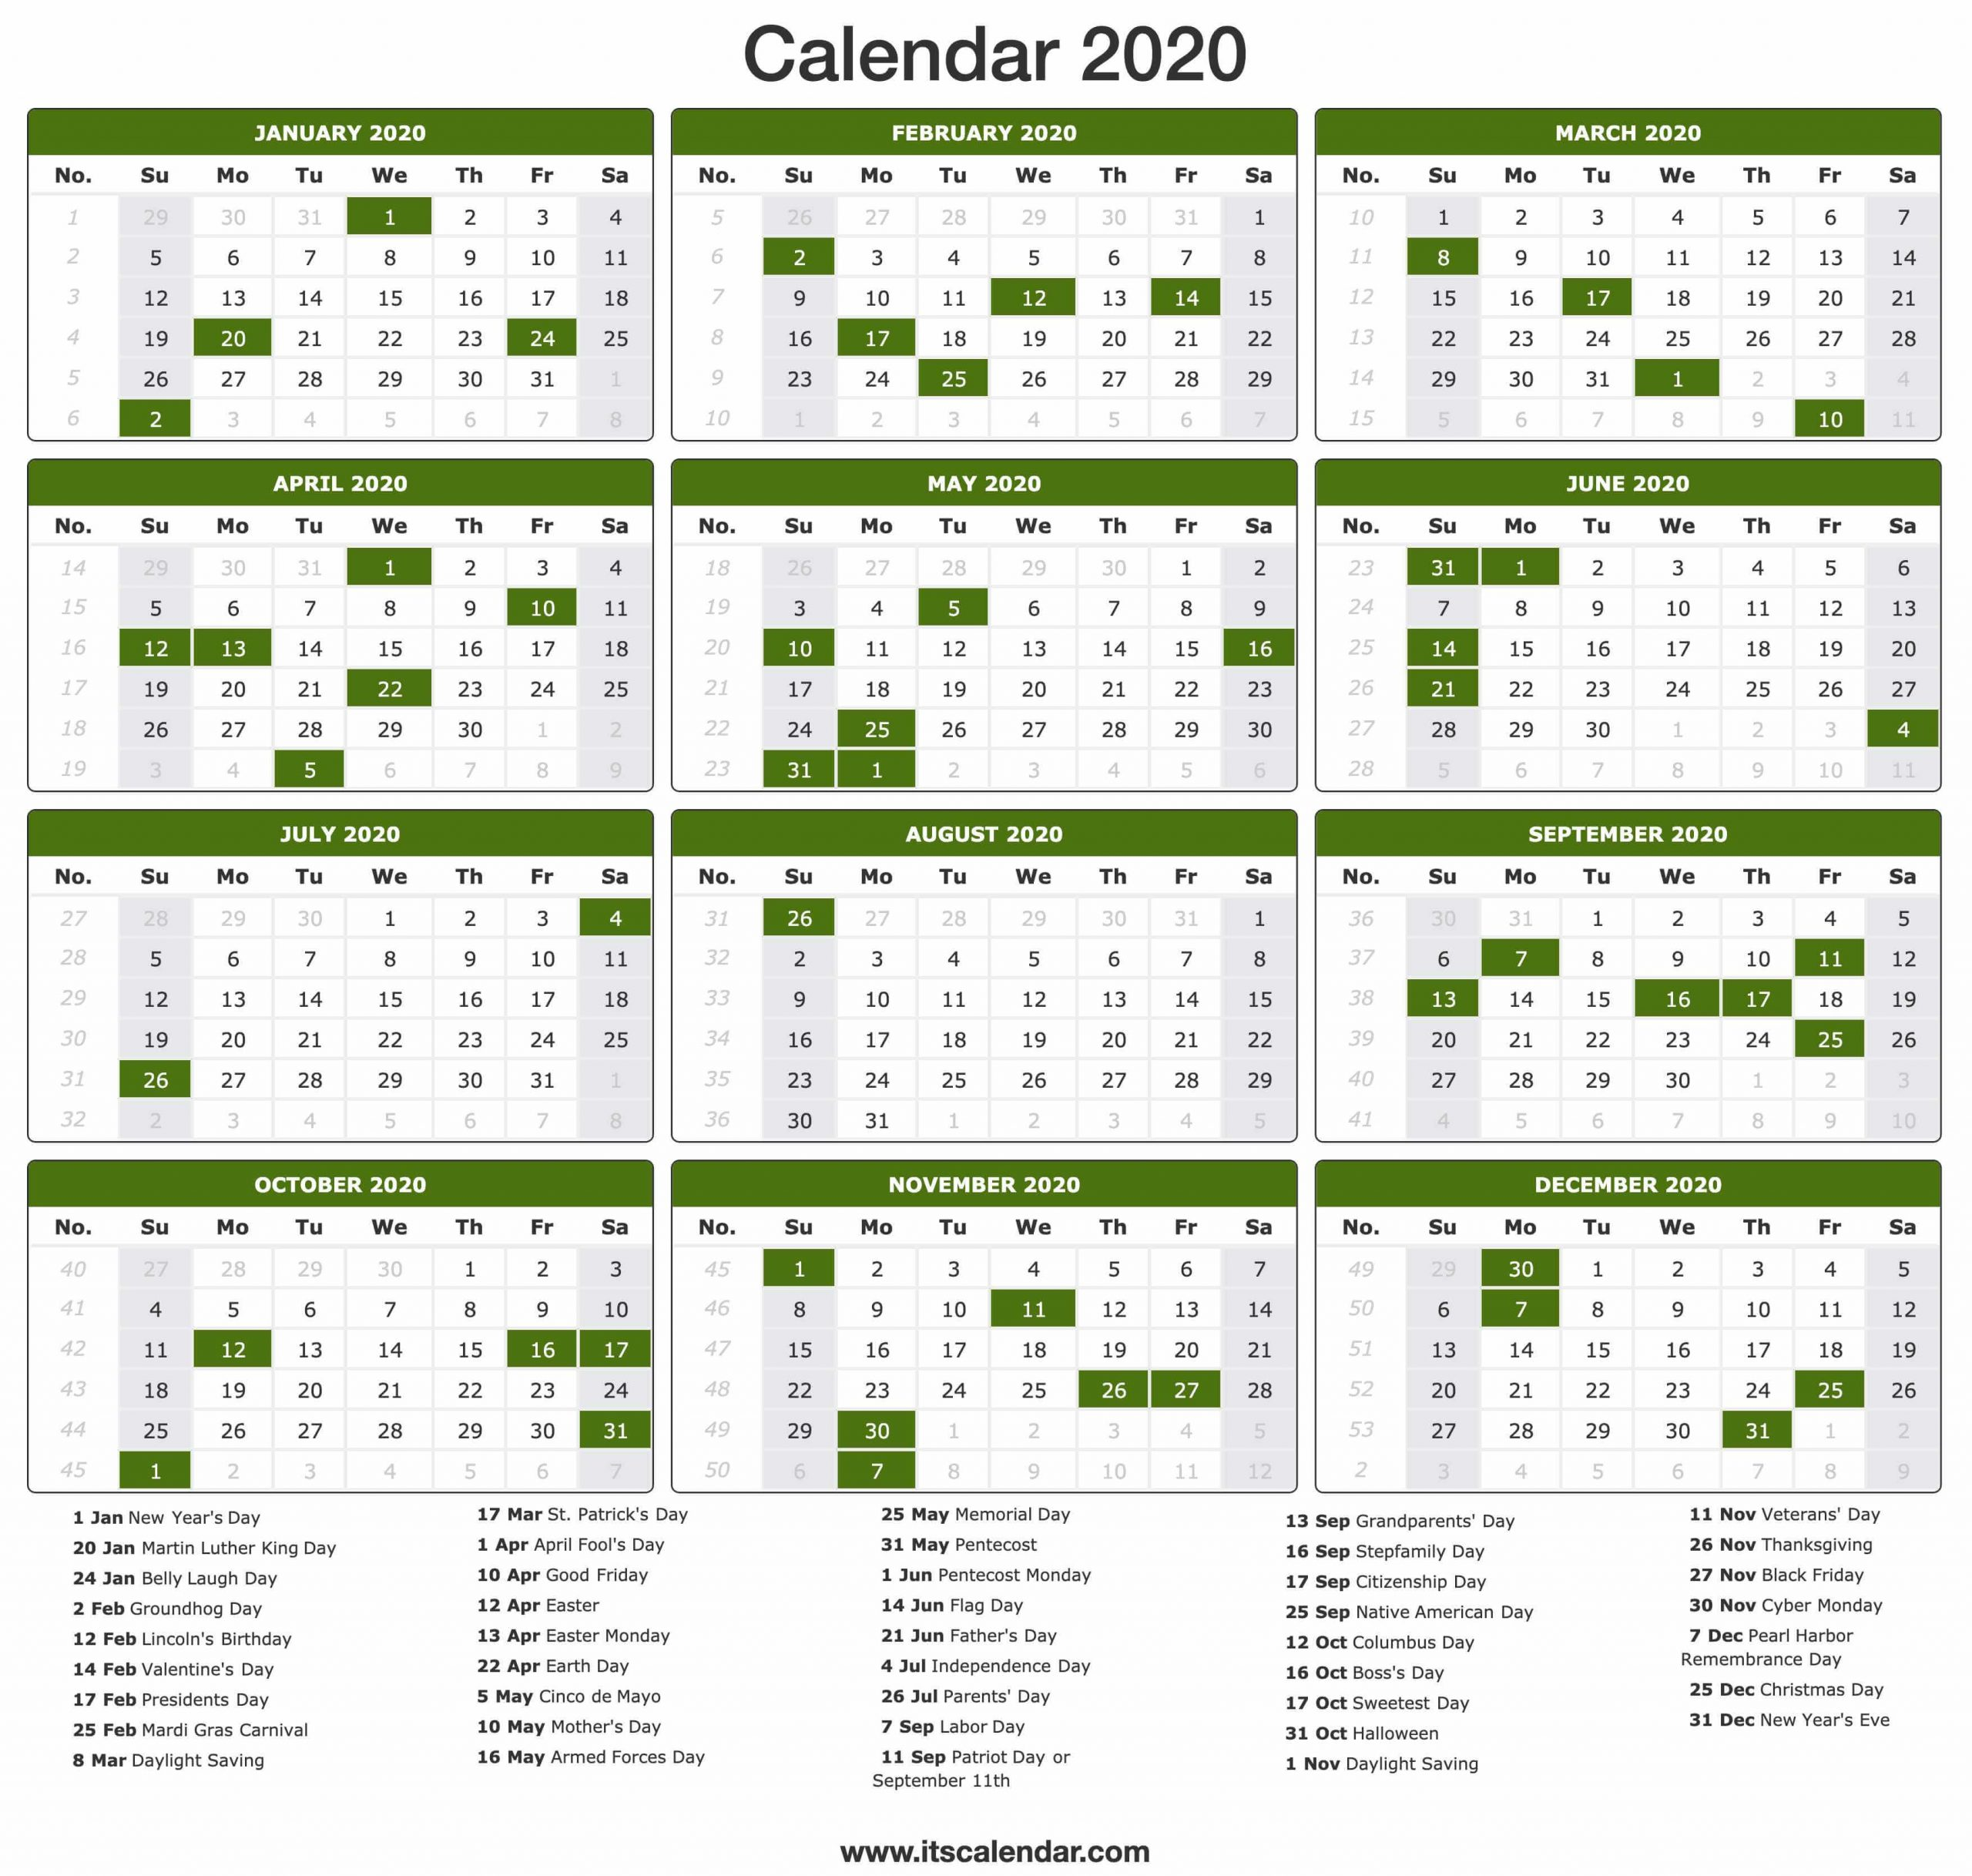 November 2020 Calendar Us Holidays - Togo.wpart.co